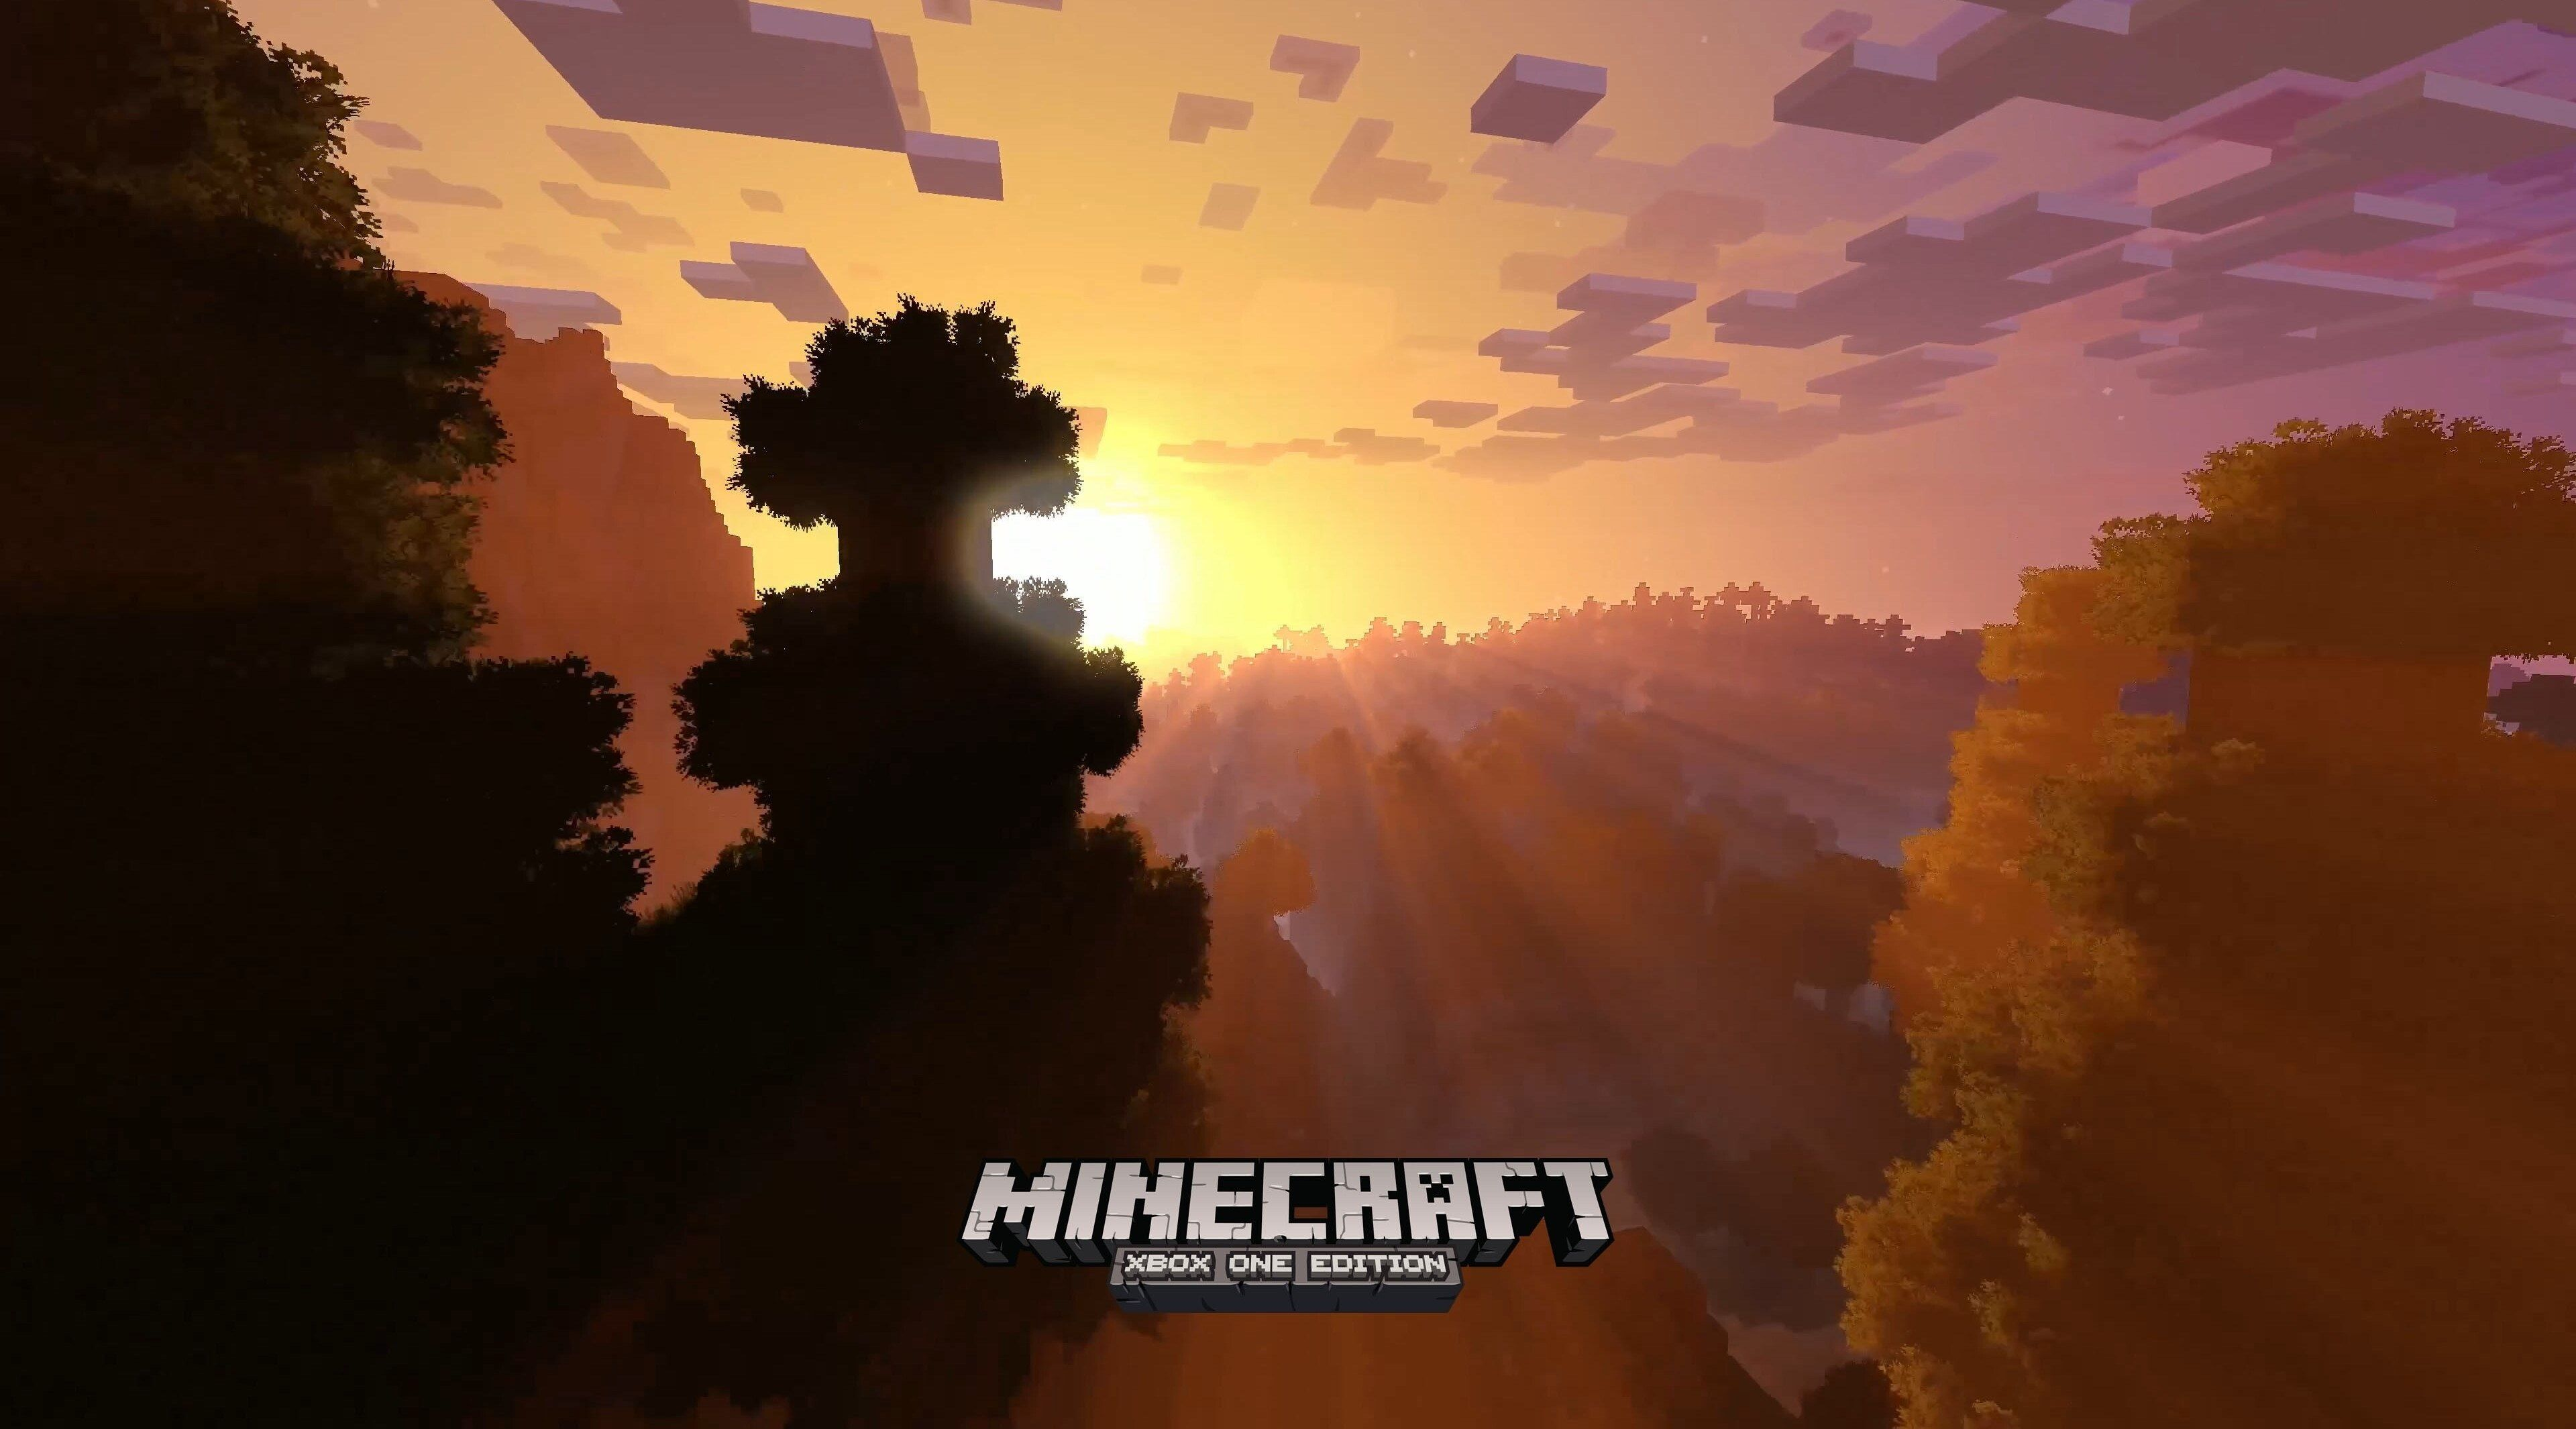 Low Whistle Minecraft Wallpaper Hd Cool Wallpapers Xbox One Background